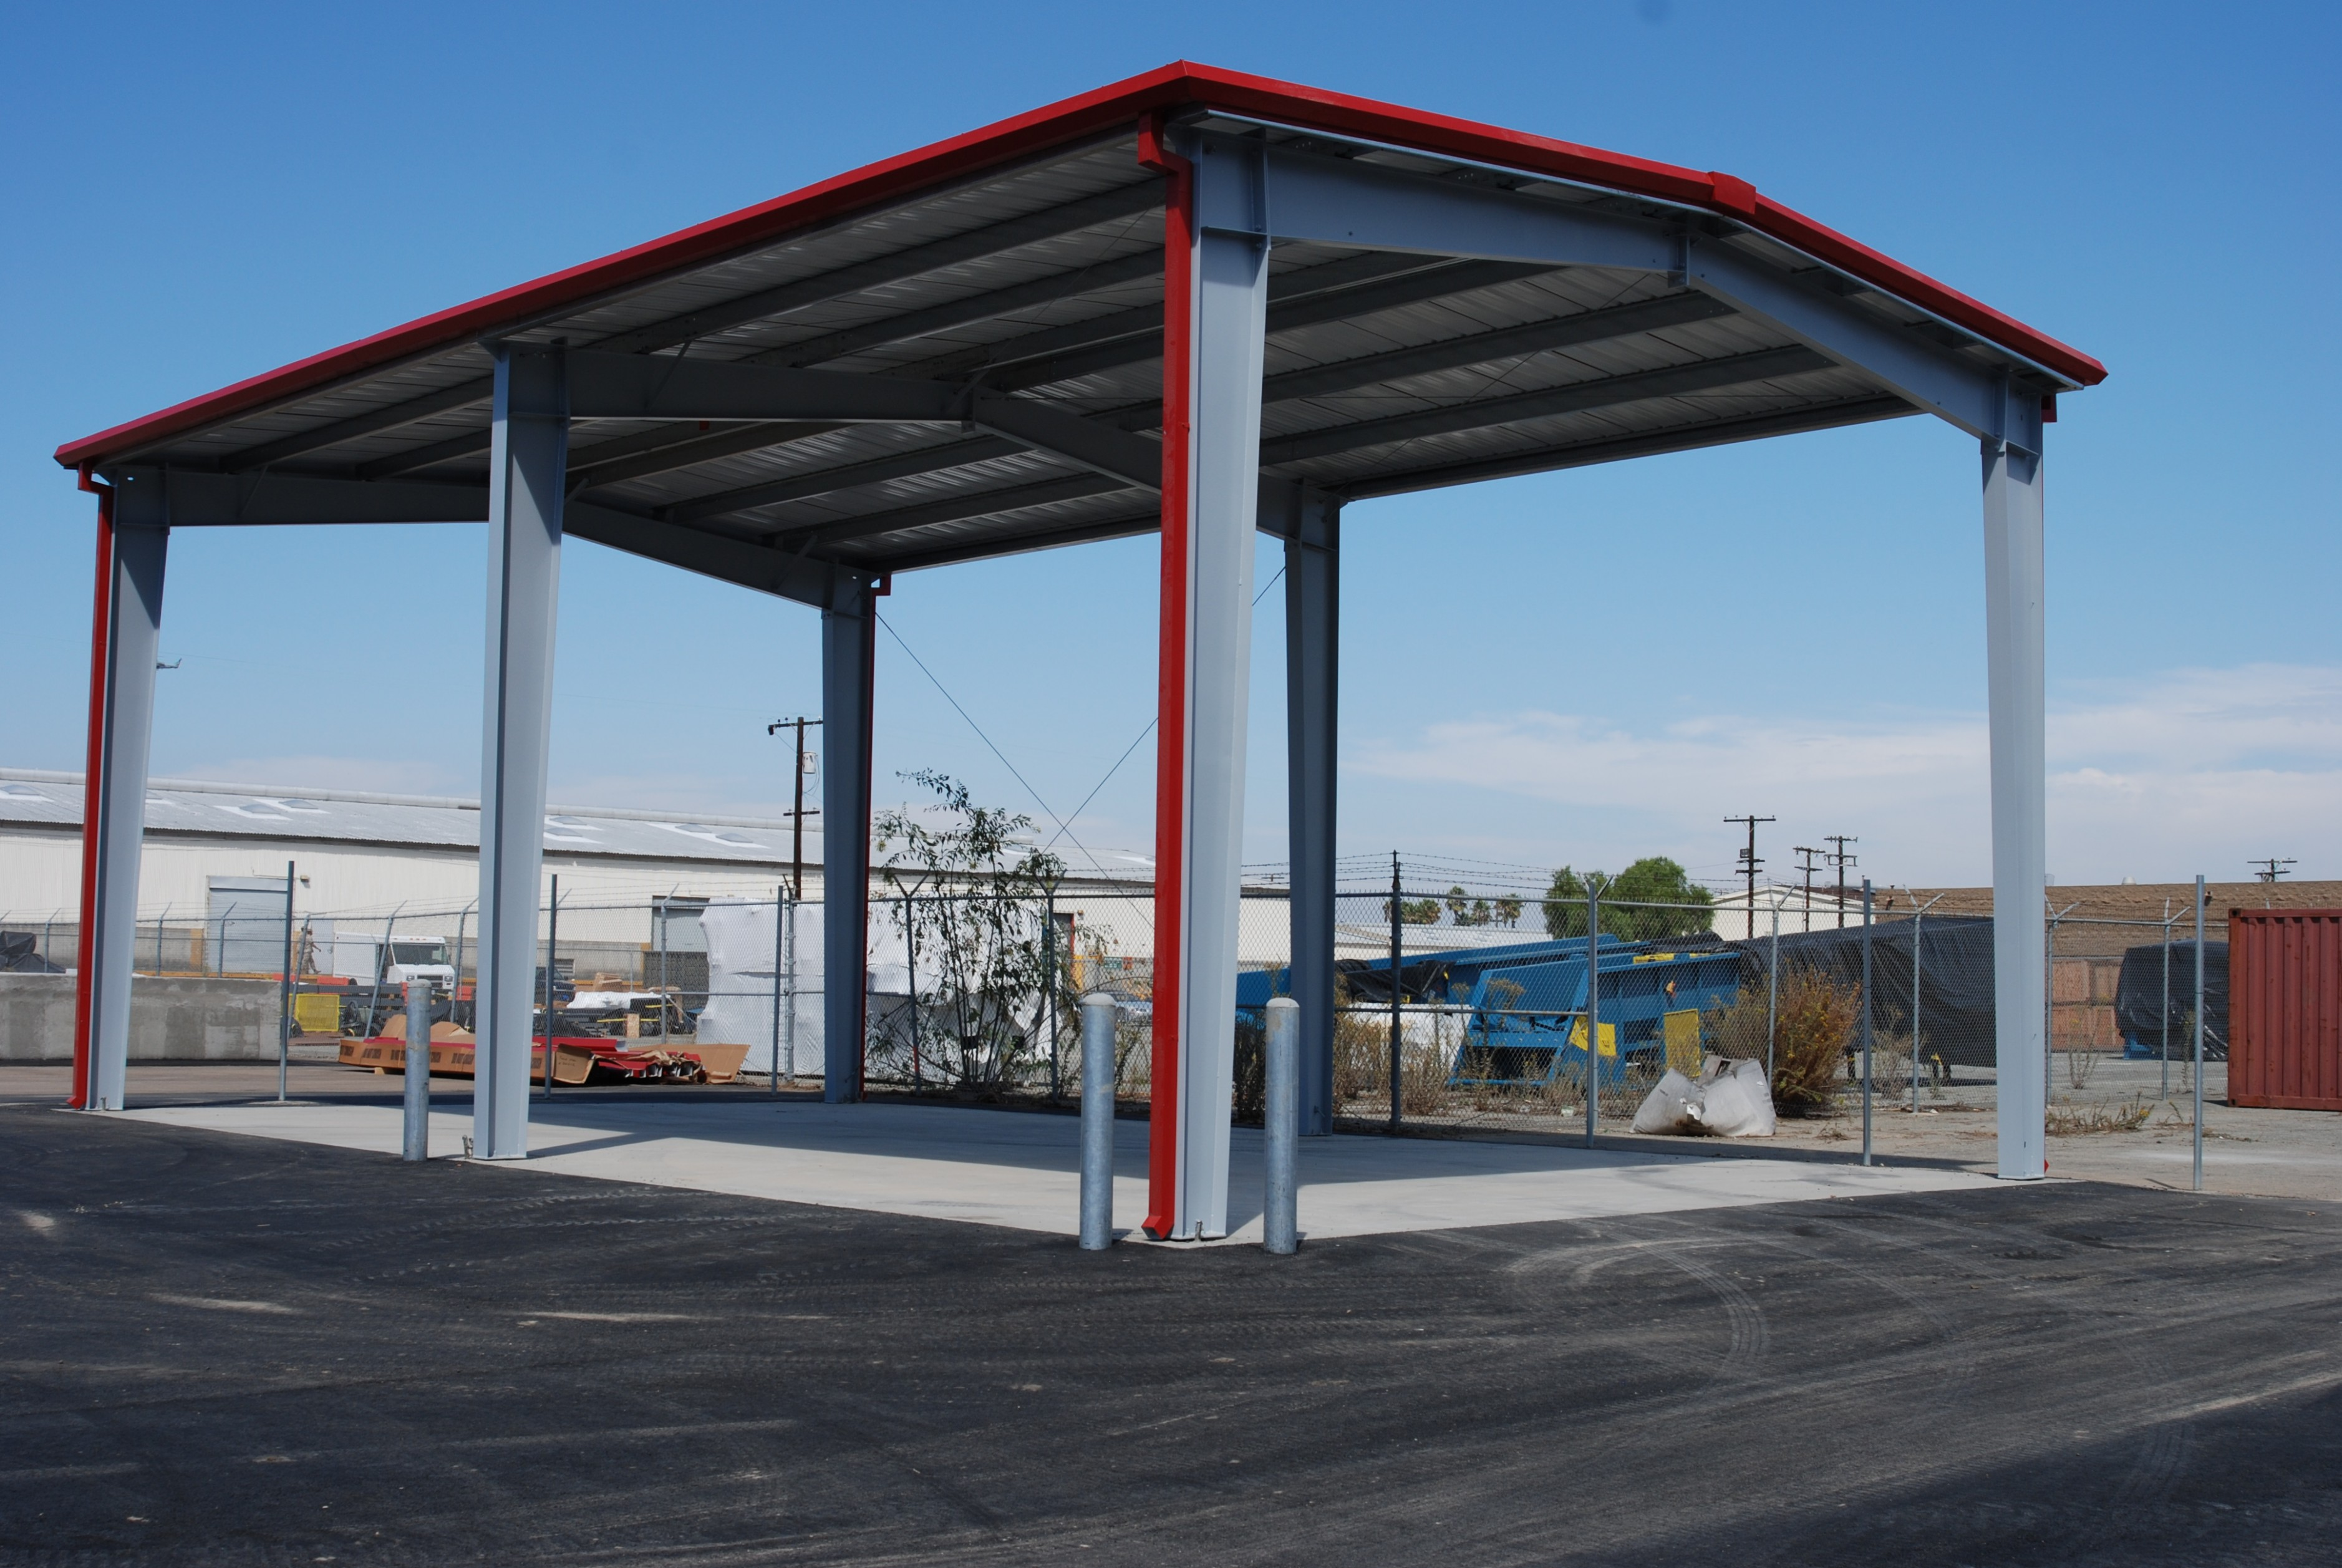 Things That Make You Love And Hate Carport Structures | carport structures